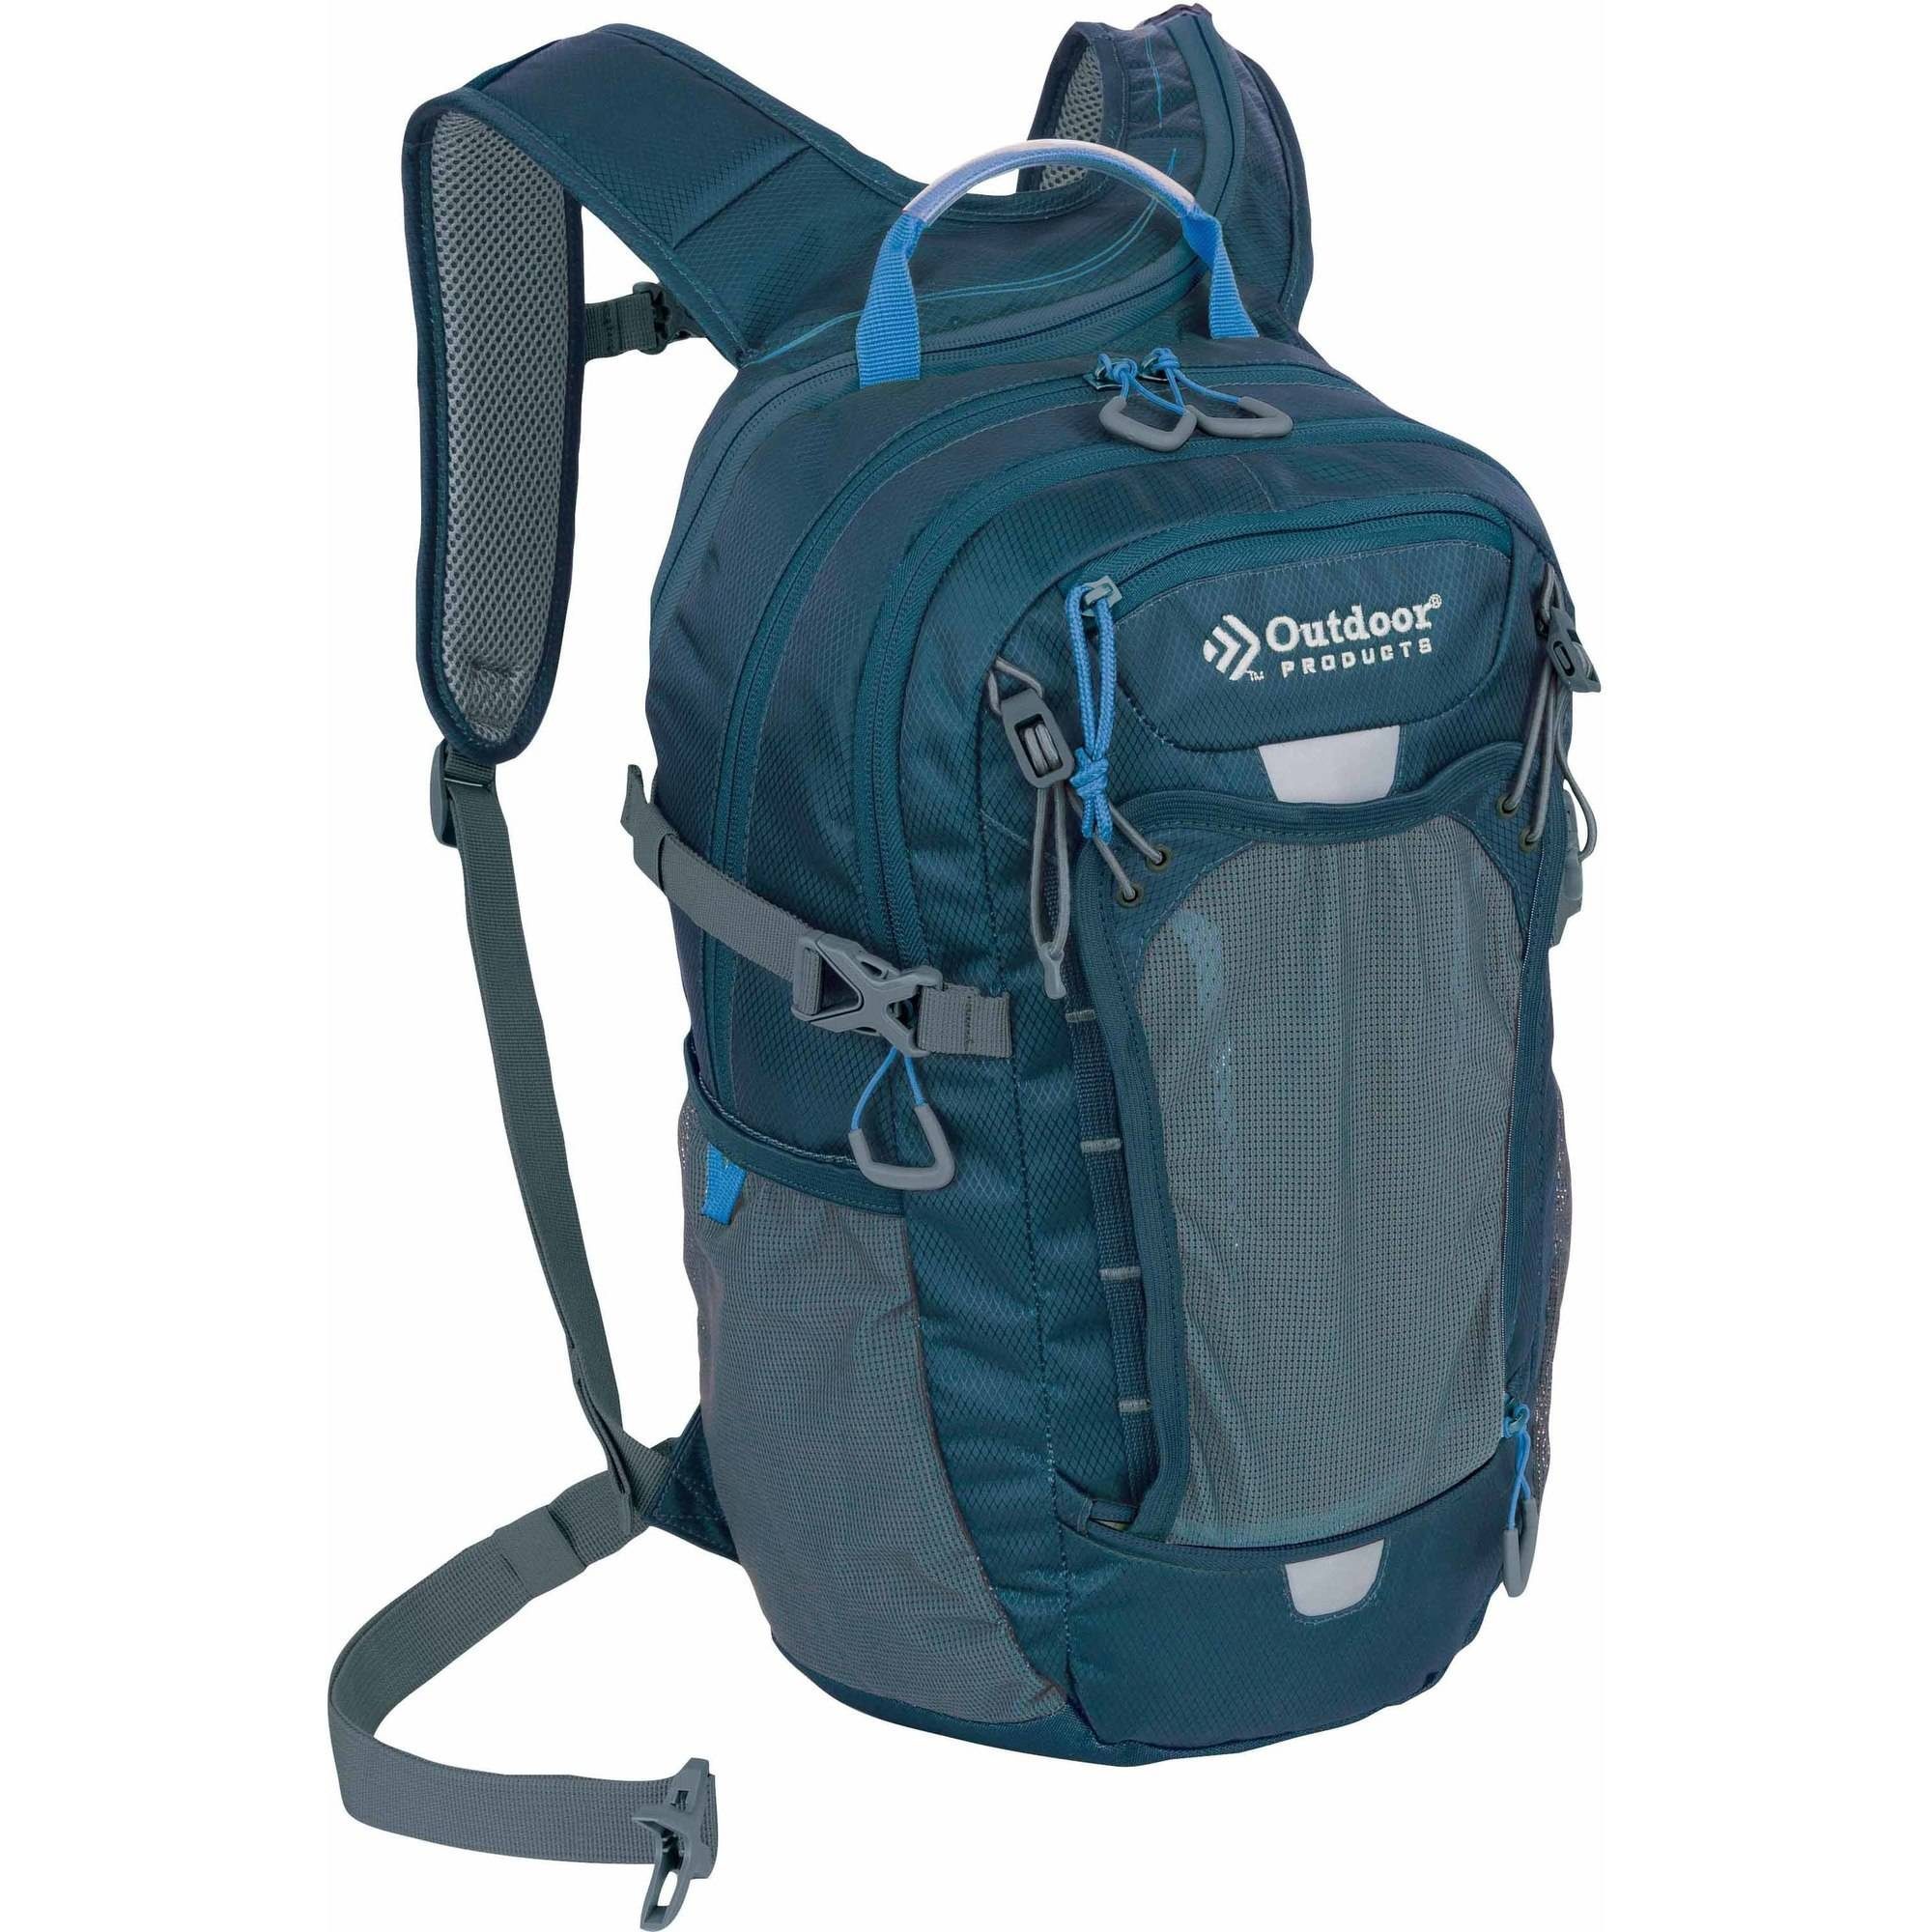 Outdoor Products Hydration Pack, Blue by Outdoor Recreation Group